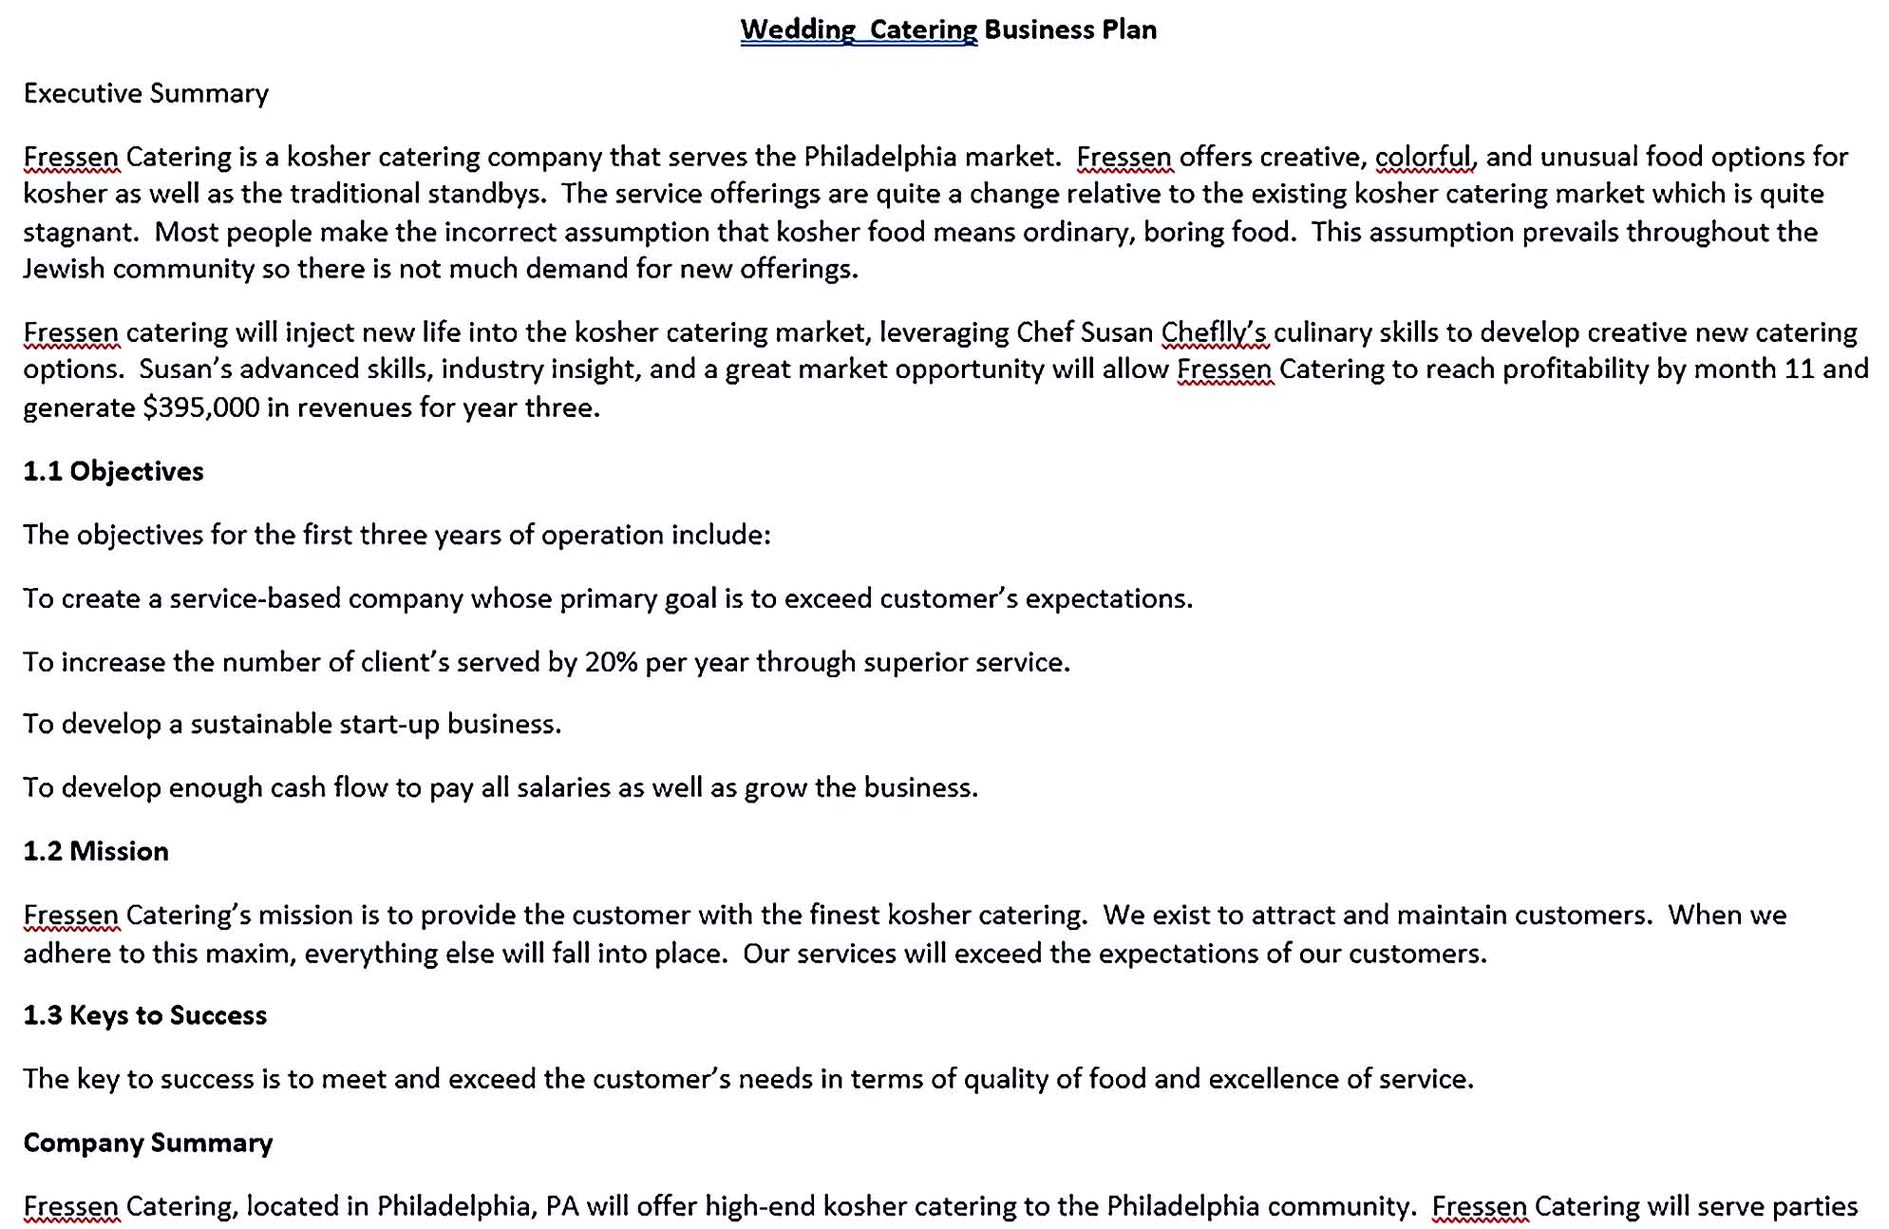 Wedding Catering Business Plan Templates